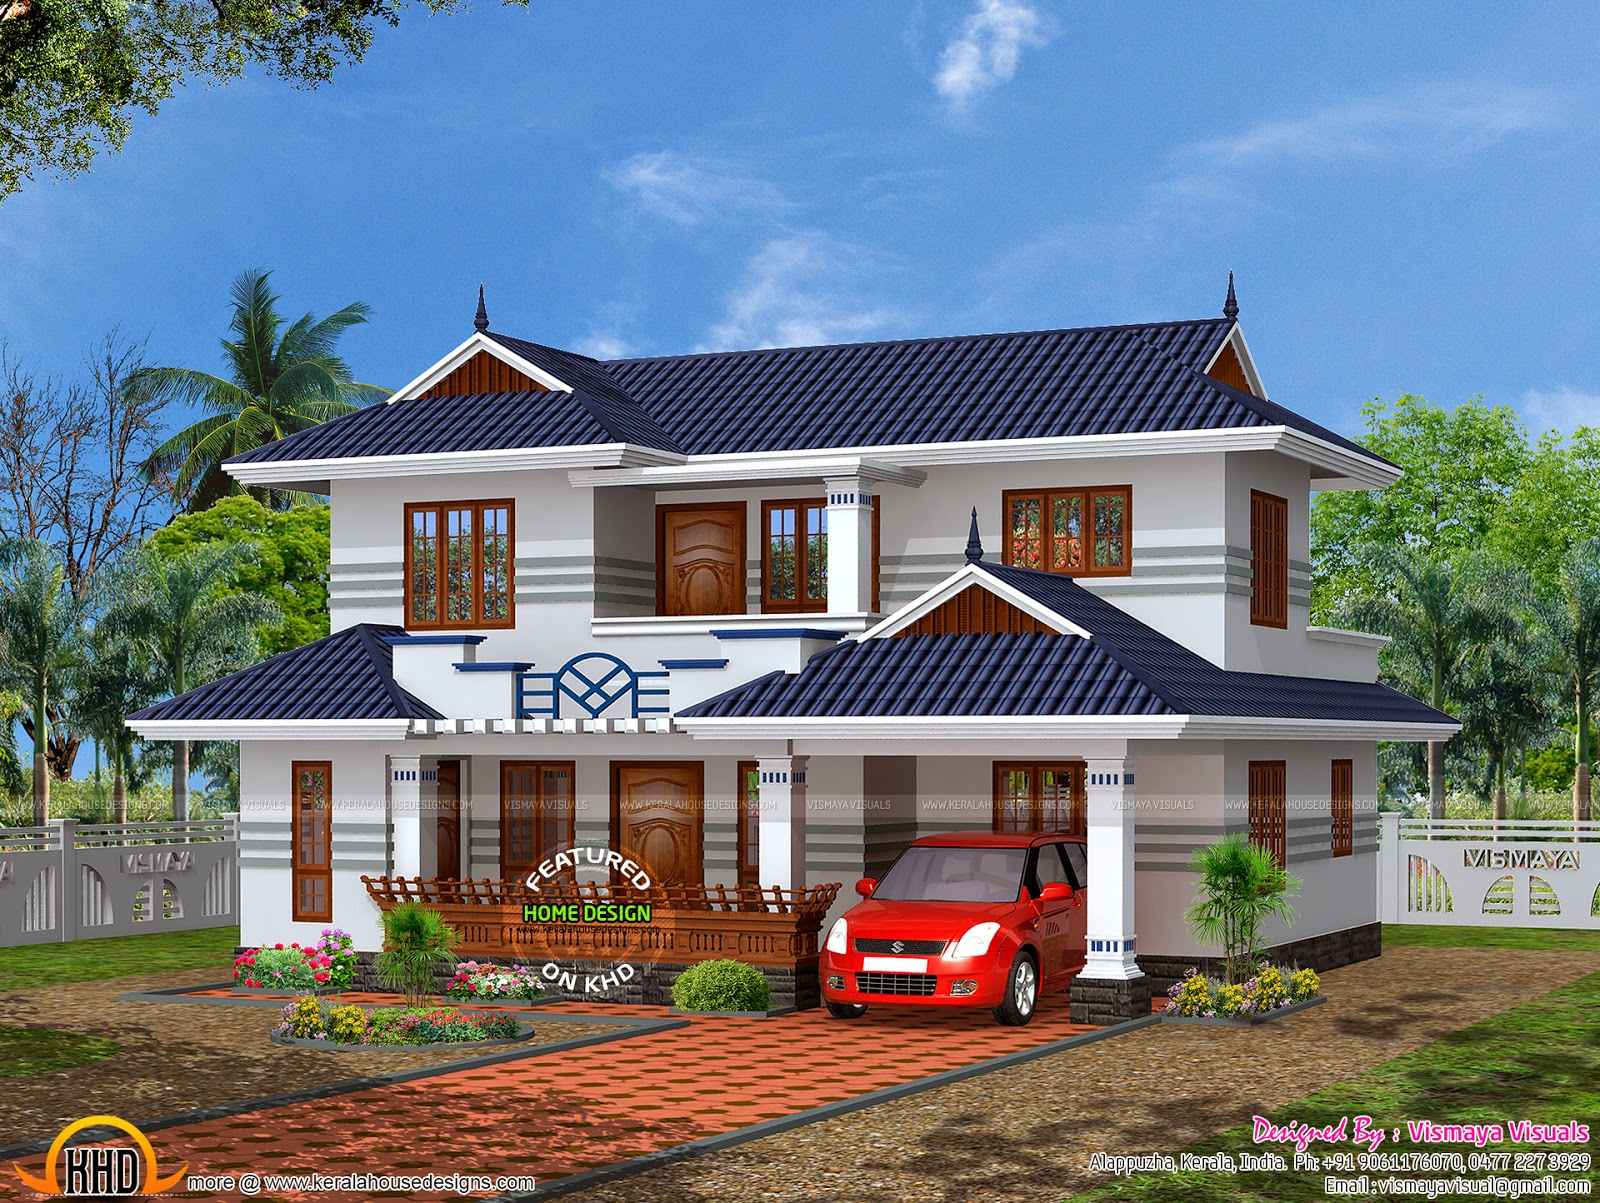 Typical kerala house plan kerala home design and floor plans for Kerala home plan